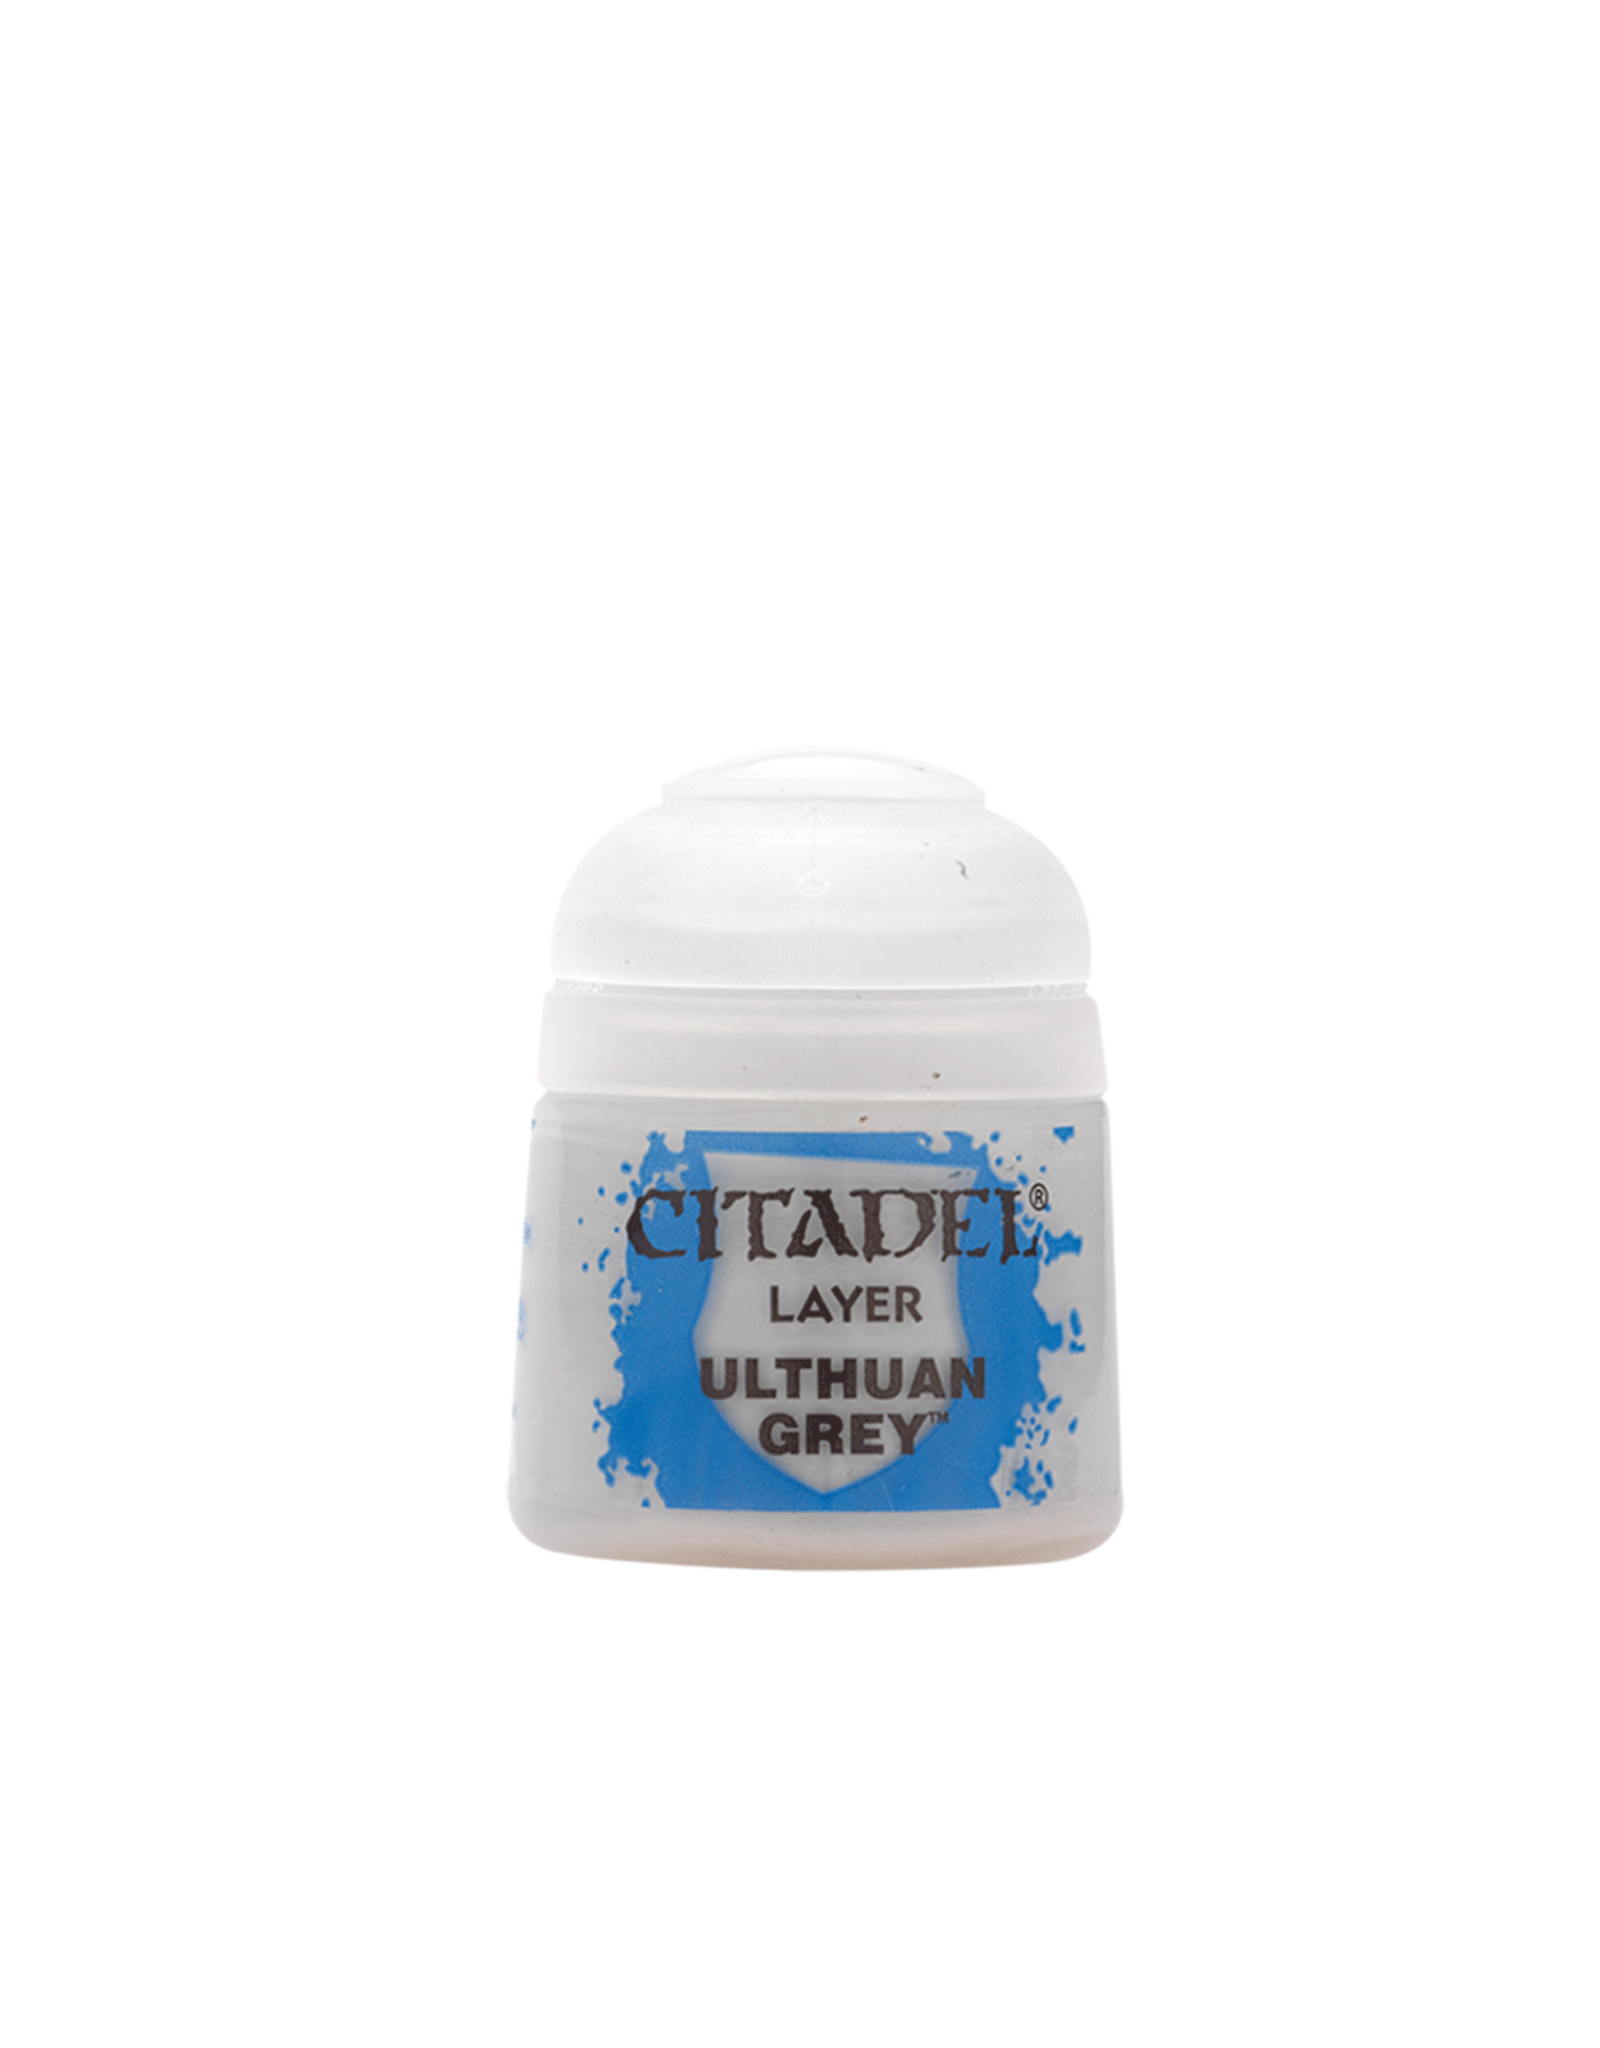 Citadel Citadel Paints Layer Paint Ulthuan Grey